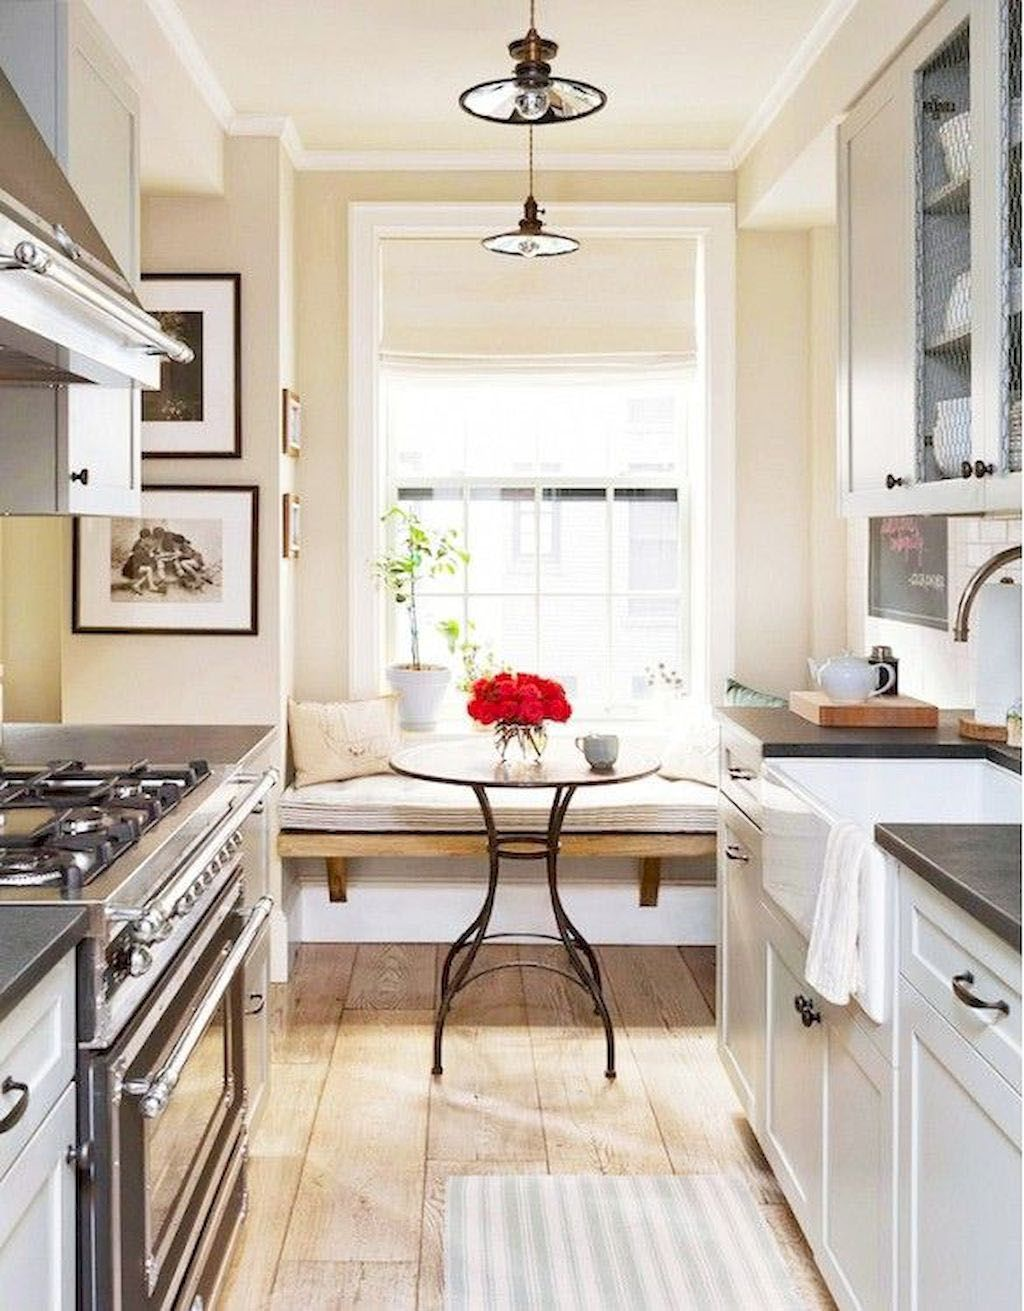 10 Tips For Planning A Galley Kitchen #galleykitchenlayouts Terrific galley kitchen butcher block one and only homesaholic.com #galleykitchenlayouts